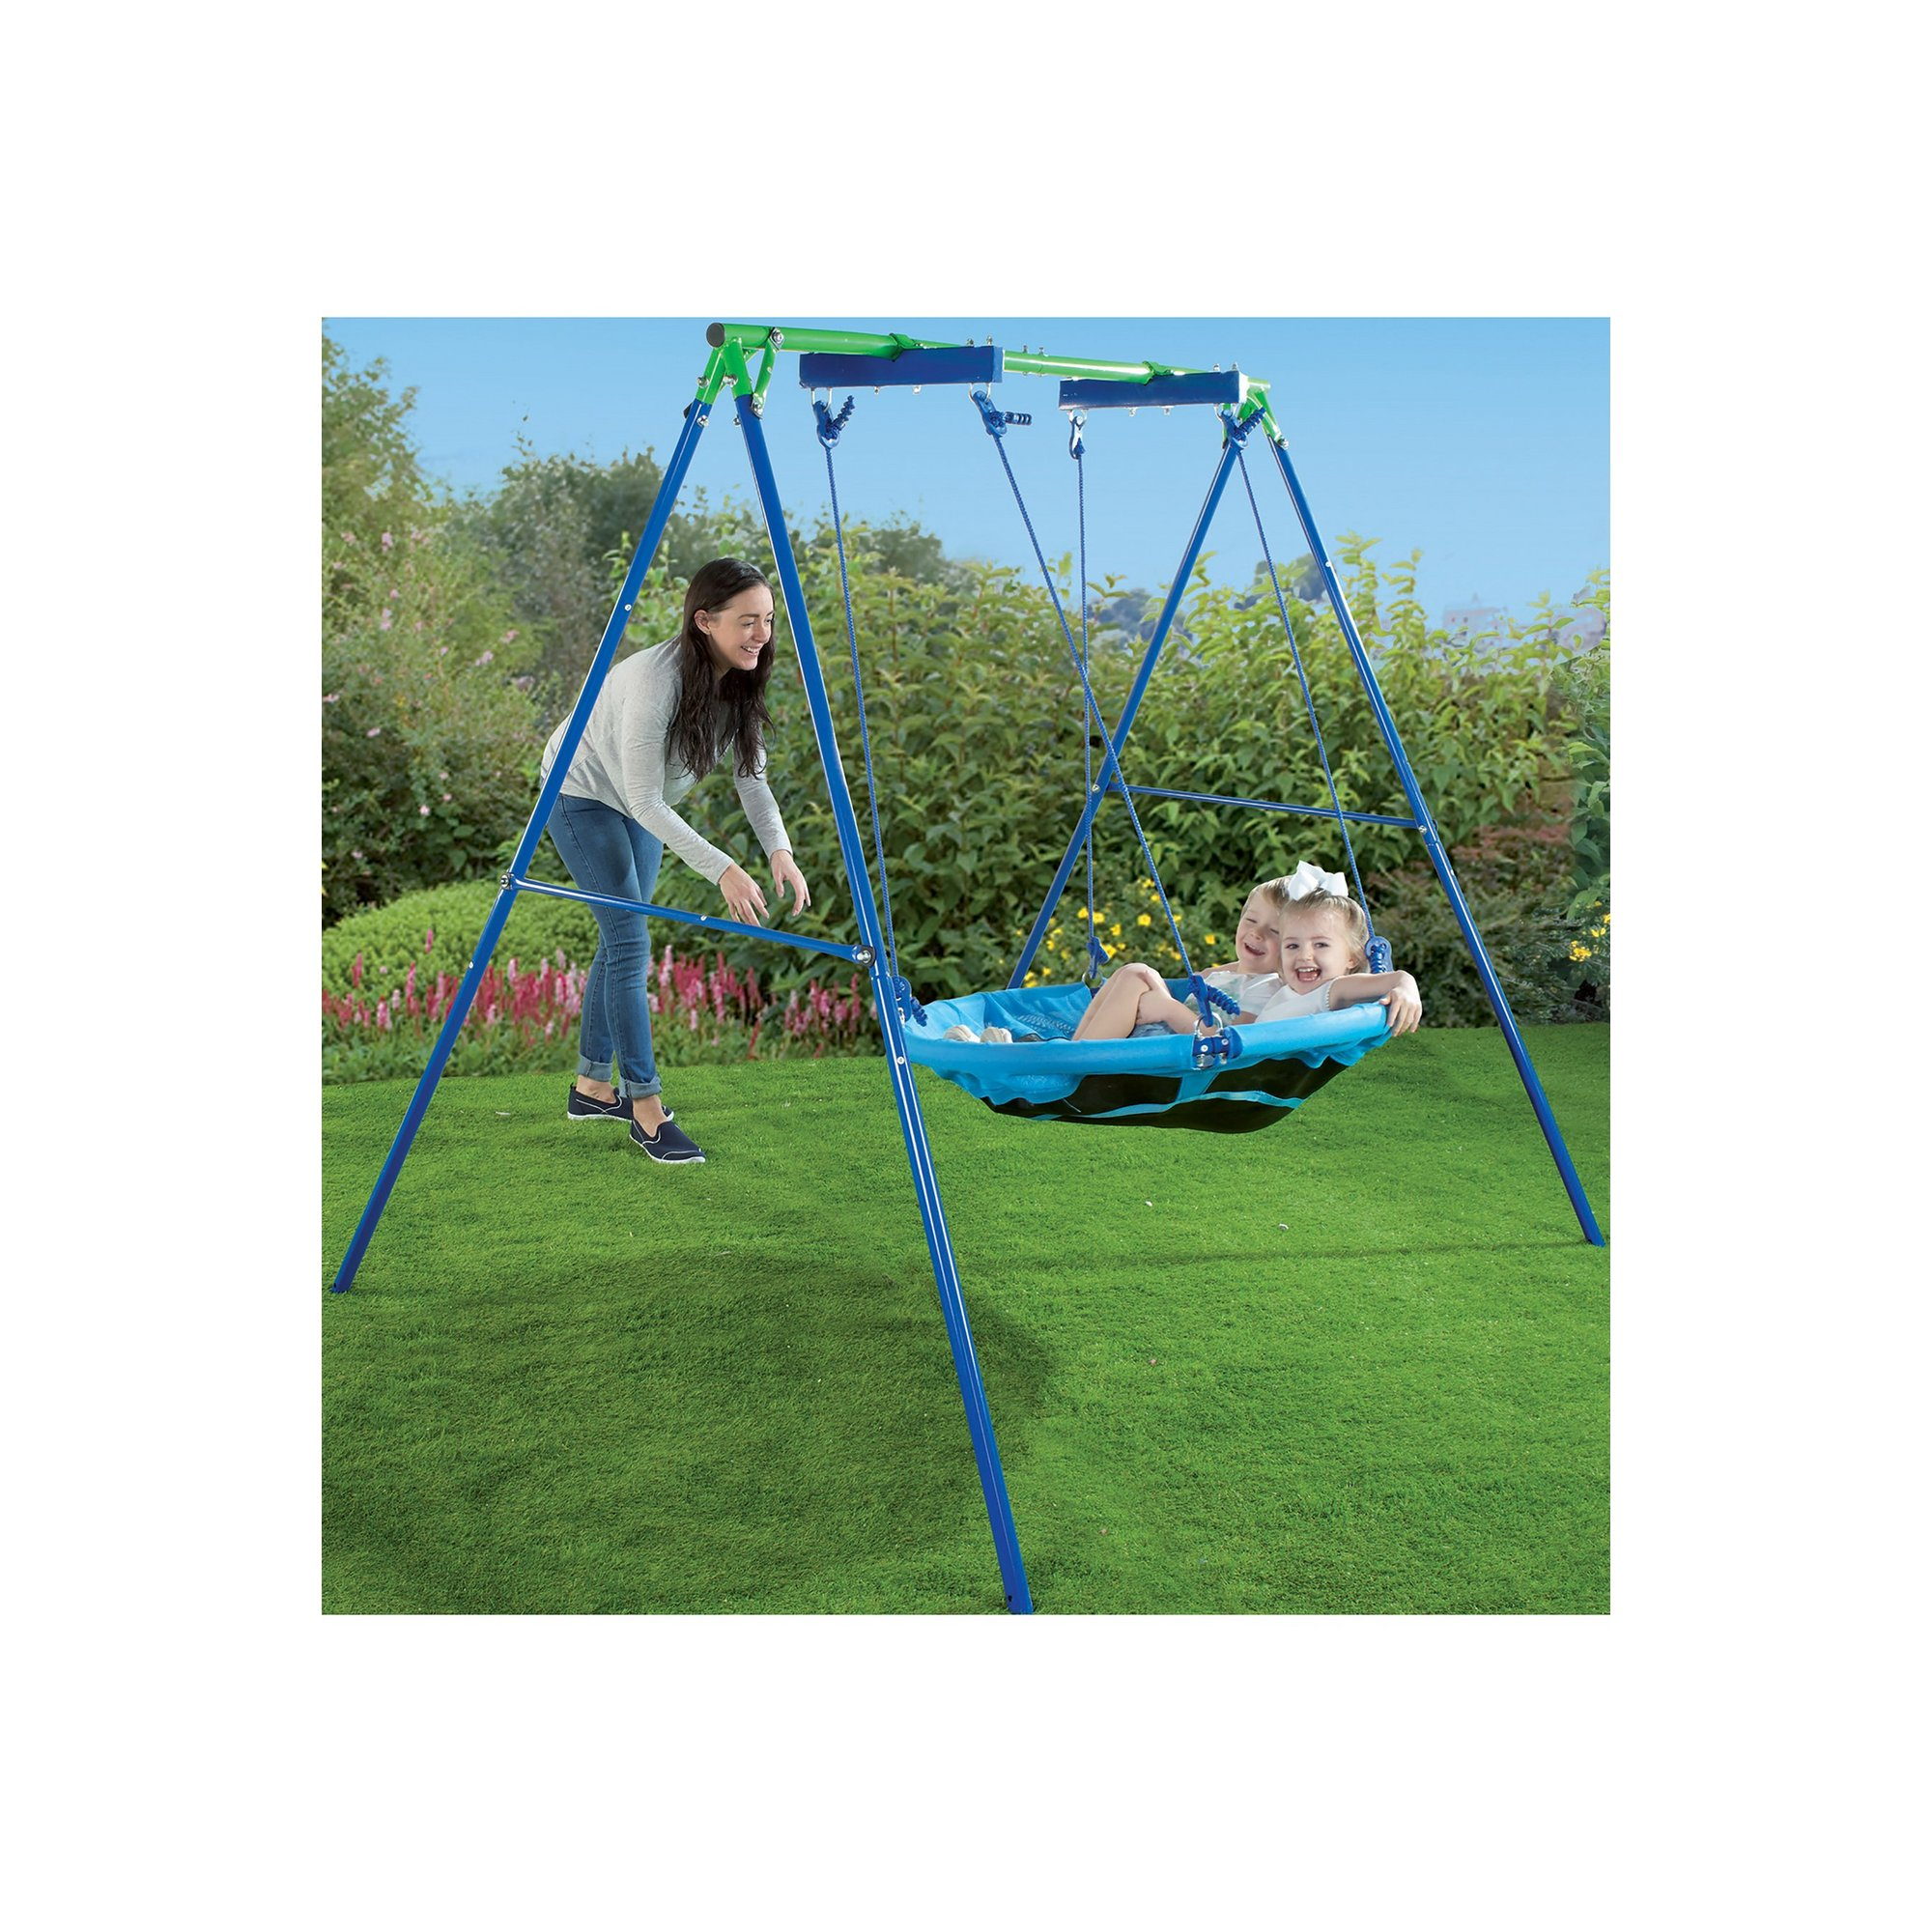 Image of Saucer Swing